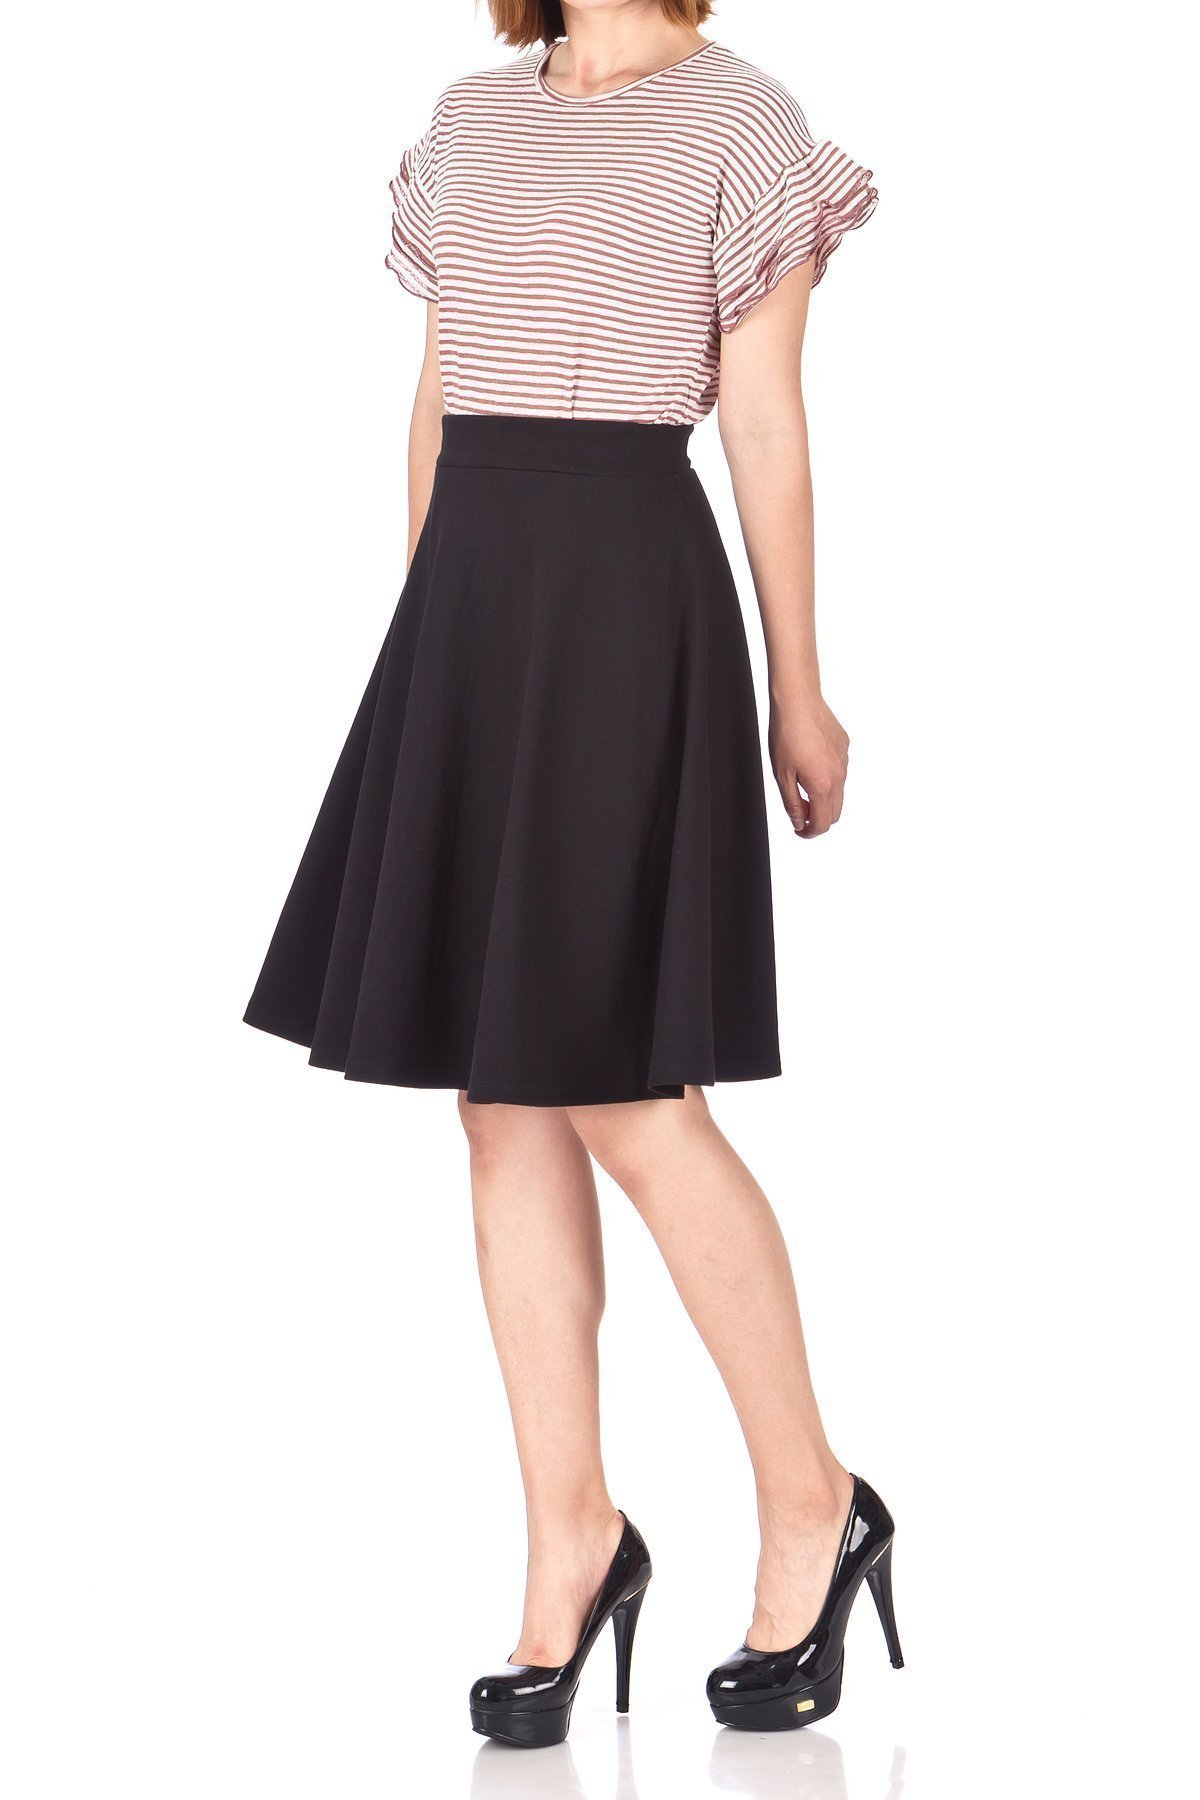 Comfy and Lovely Cotton Blend Versatile Casual Office High Waist A line Full Flared Swing Circle Skater Knee Length Skirt Black 01